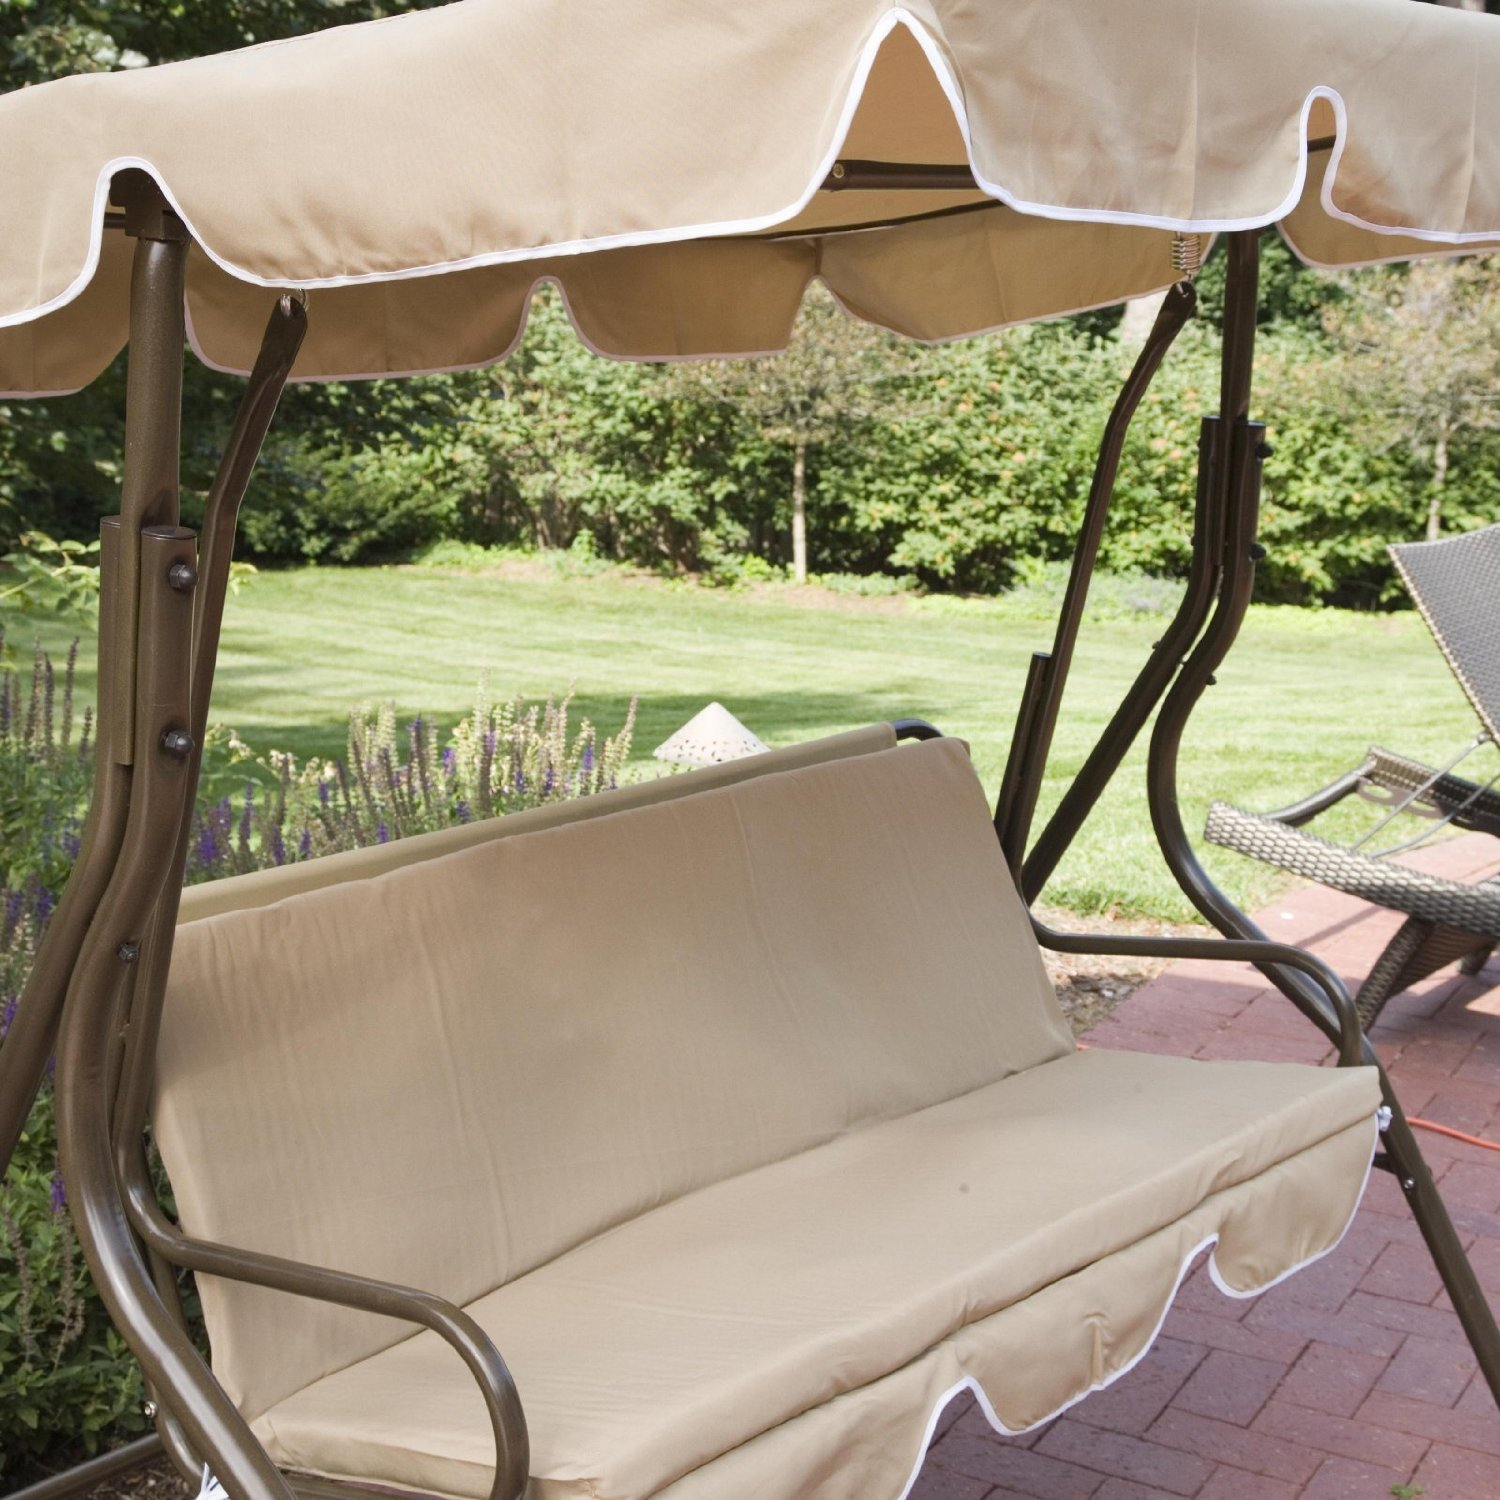 2 Person Covered Patio Swing W Adjustable Tilt Canopy